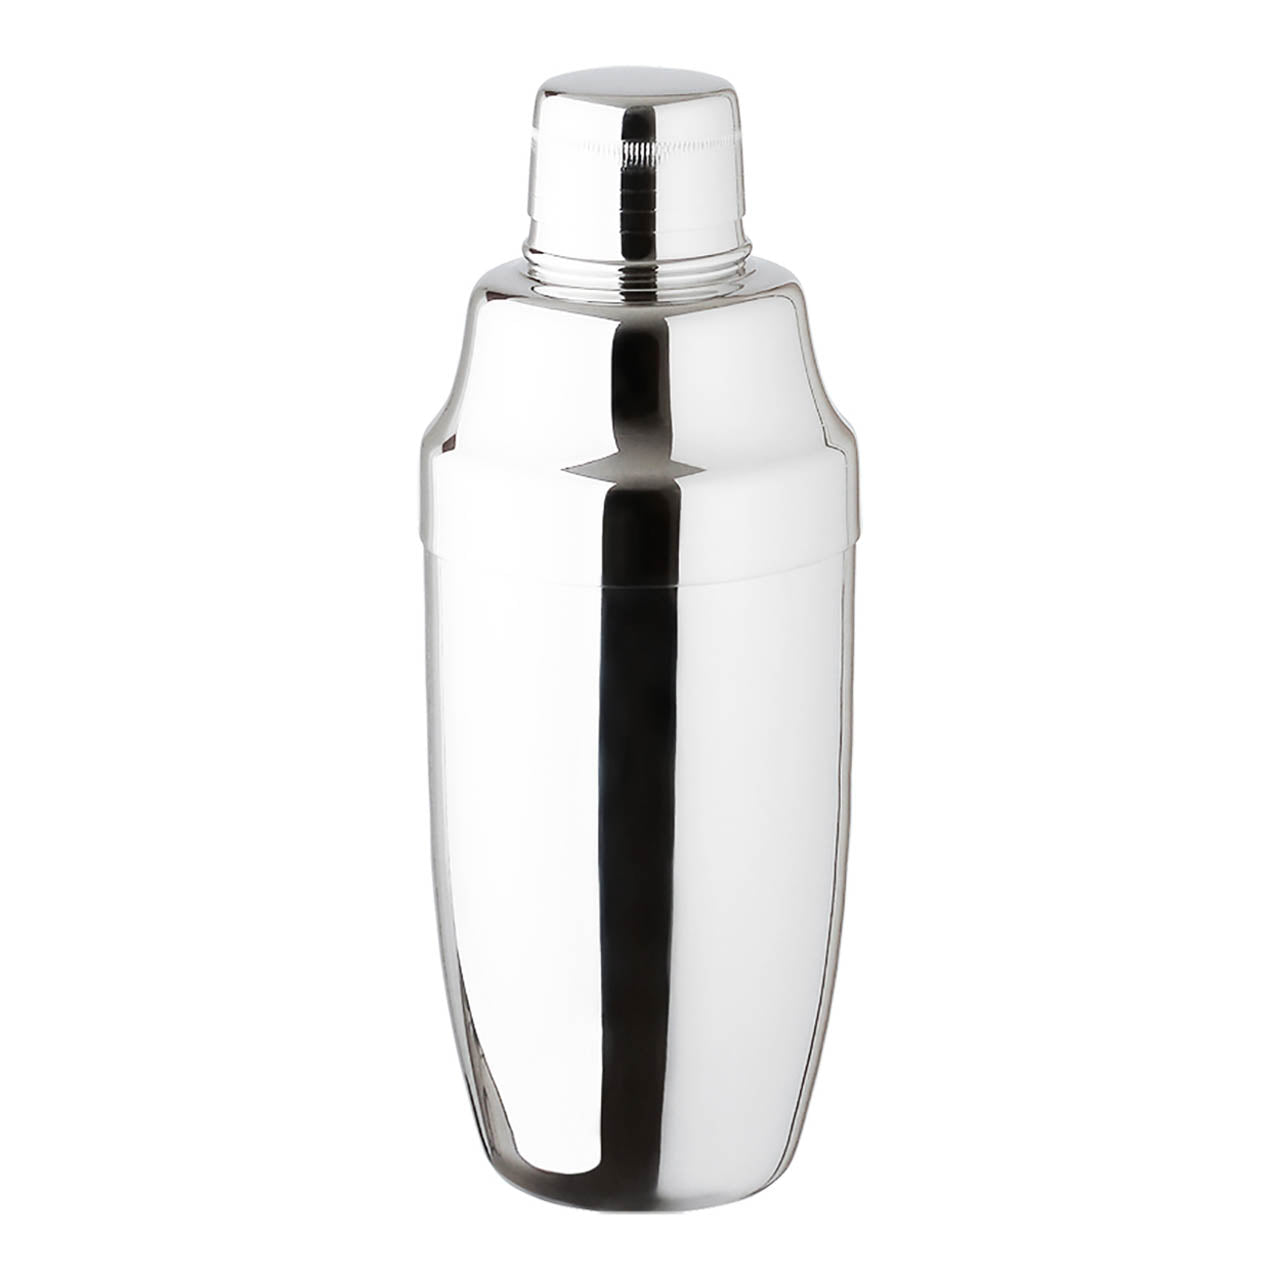 Yukiwa Stainless Steel Cobbler Cocktail Shaker 790ml (26.7 oz)